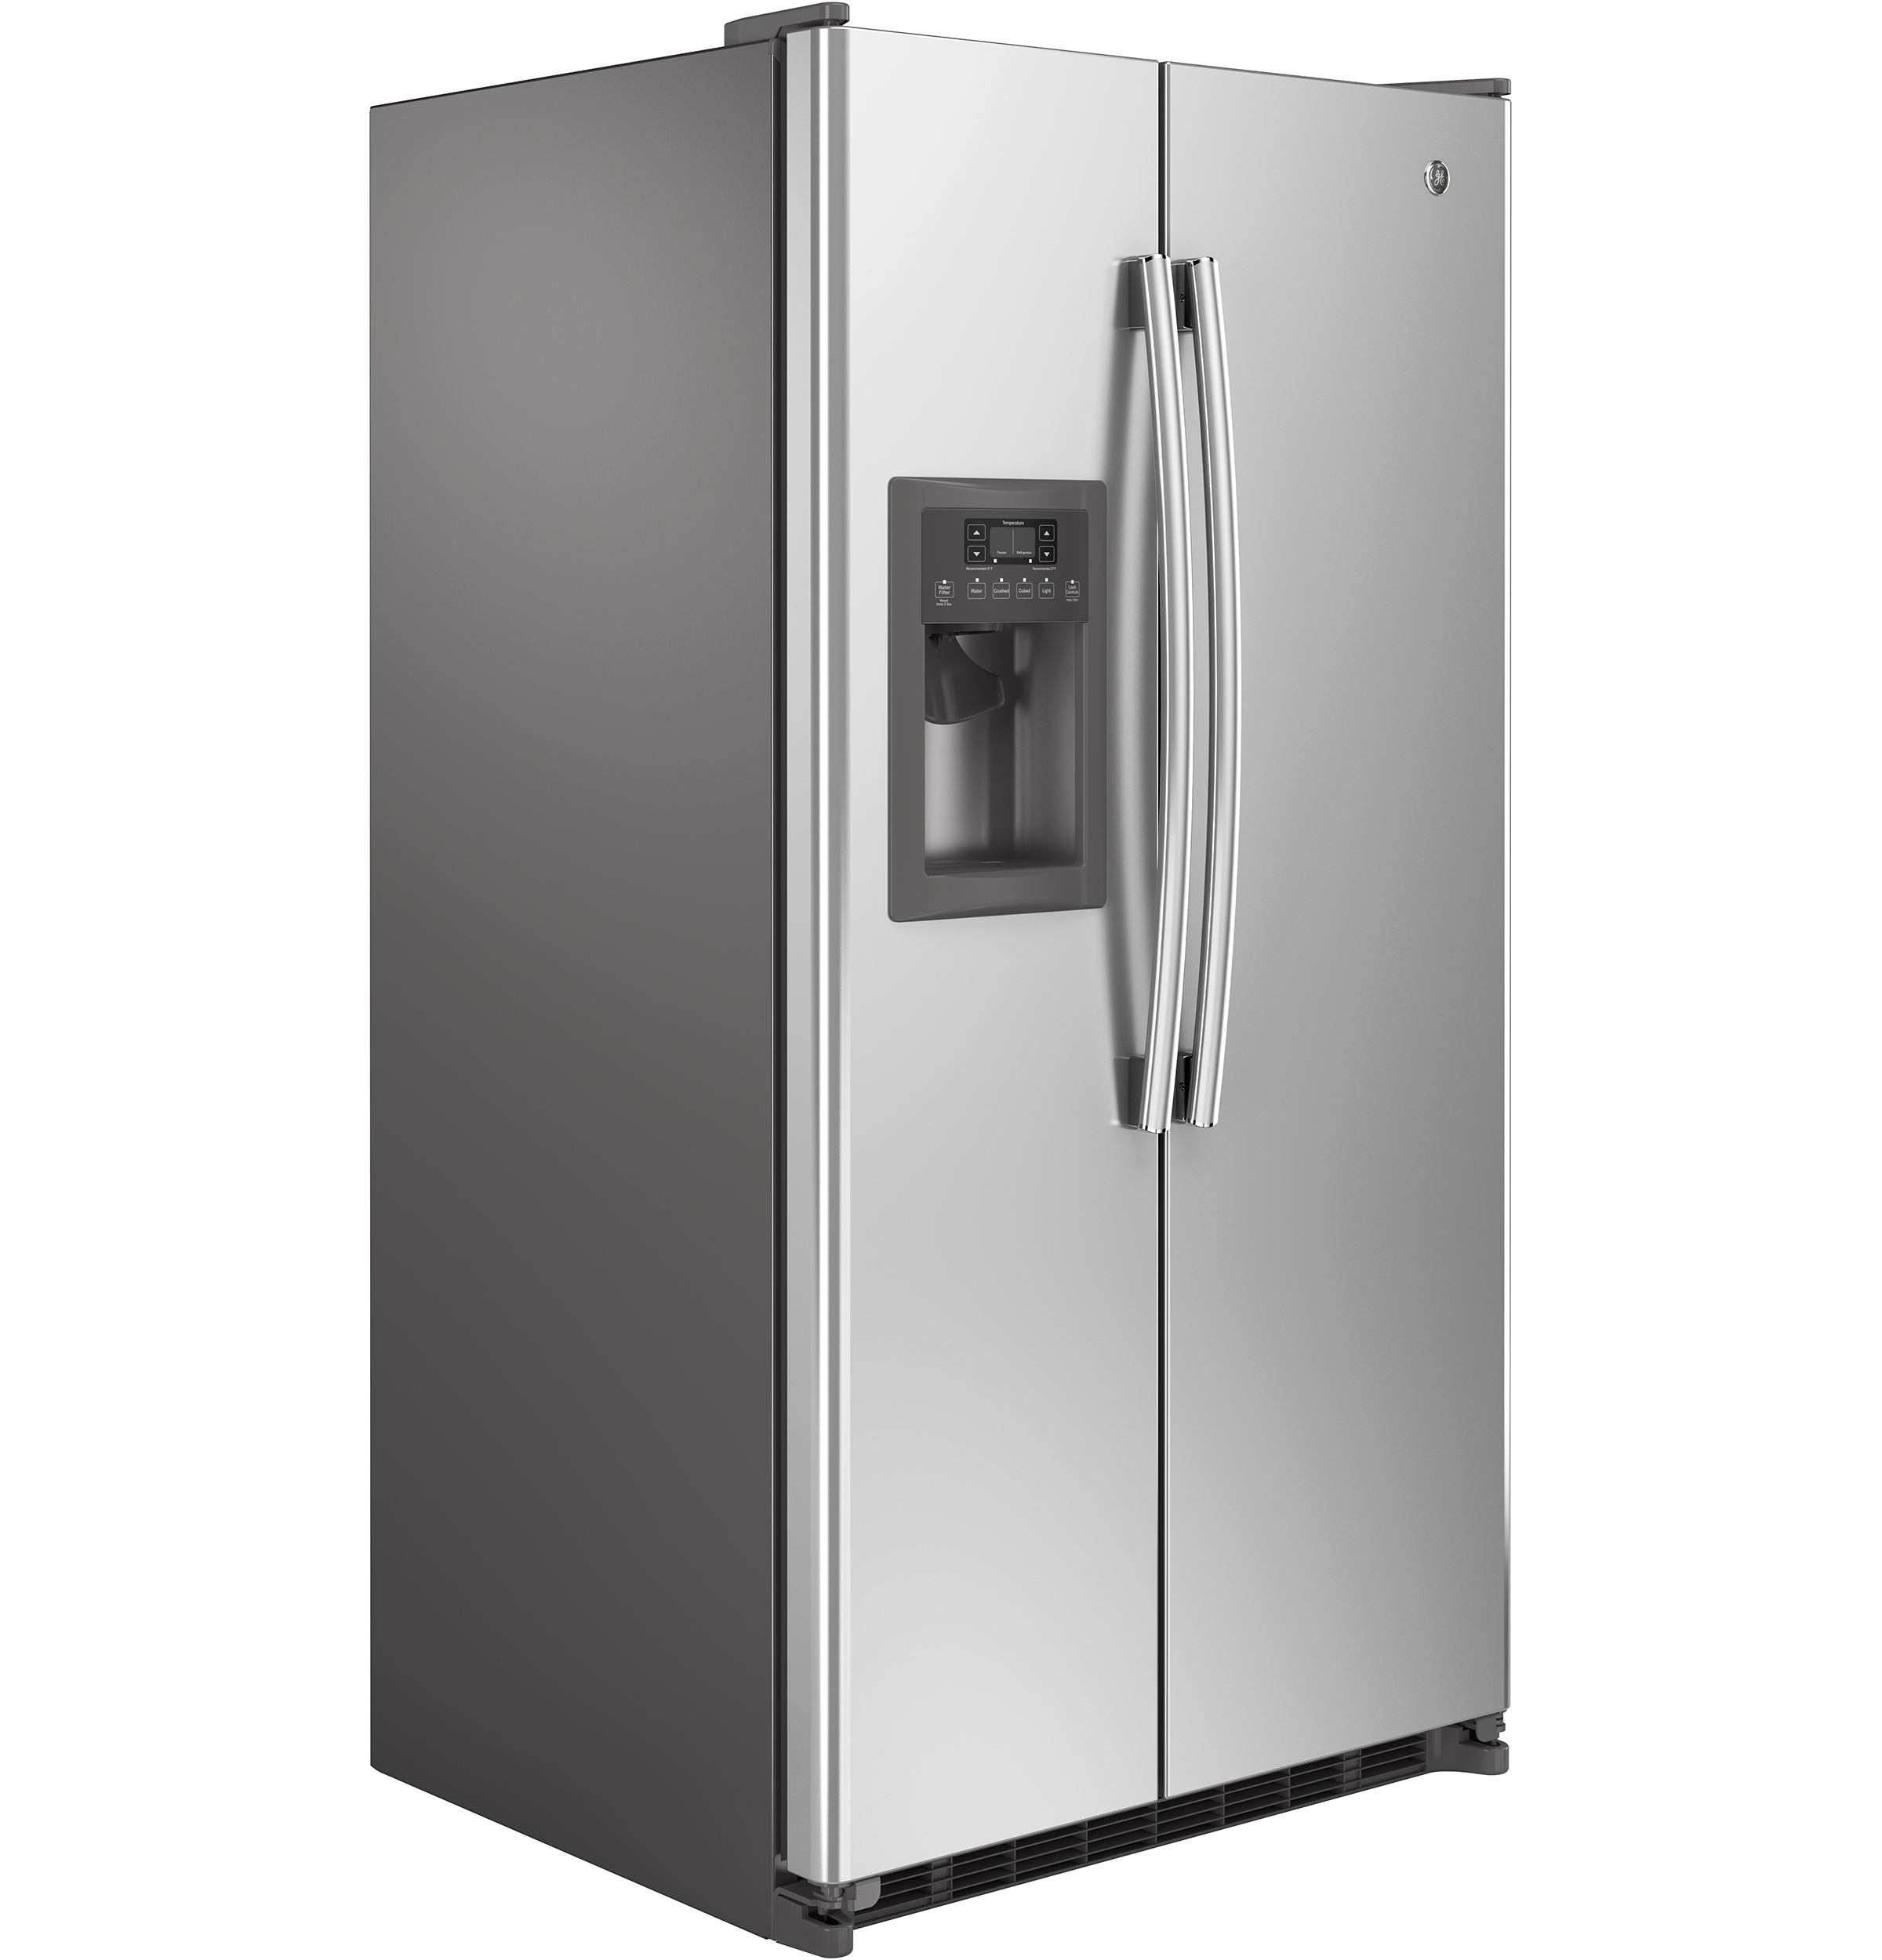 GE Appliances GSE25ESHSS 24.7 cu. ft. Side-by-Side Refrigerator - Stainless Steel